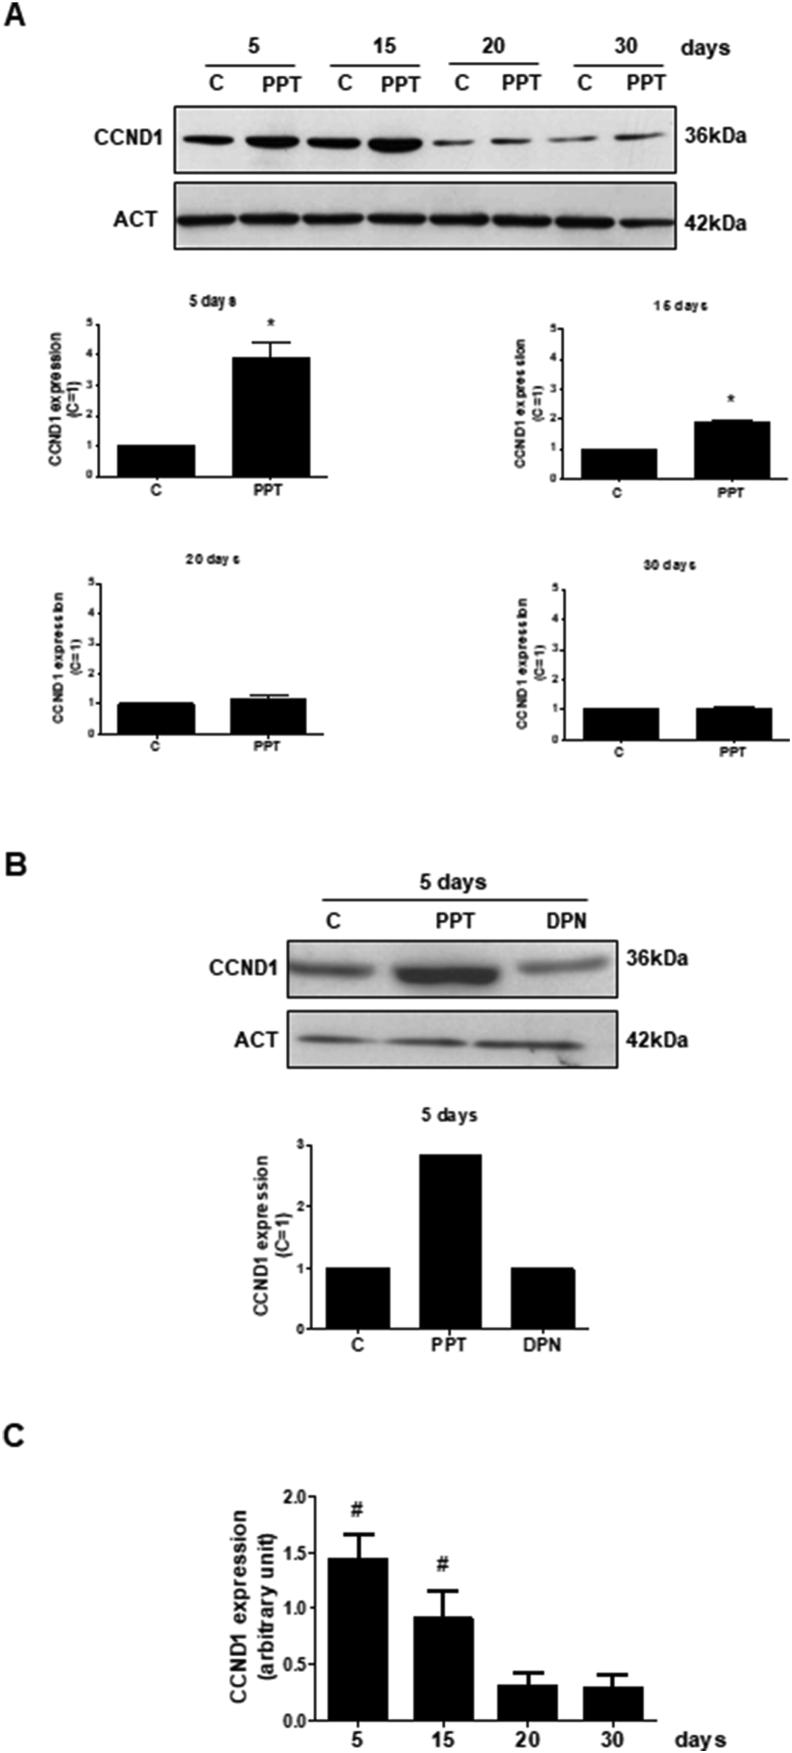 Effects of ESR1-selective agonist PPT and ESR2-selective agonist DPN on the expression of CCND1 in the Sertoli cells from 5-, 15-, 2 0- and 30-day-old rats . A. Sertoli cells from 5-, 15-, 20- and 30-day-old rats were incubated in the absence (C, control) and presence of PPT (10 nM) for 24 h. The relative positions of CCND1 (top panel) and ACT (bottom panel) proteins are shown at the right. The data shown are representative of four independent experiments (top and bottom panels). See, full image in Supplemental Fig S1. Bars represent the densitometric analysis of four independent experiments. Results were normalized to ACT expression in each sample and plotted (mean ± SEM) in relation to control, C (=1). ∗Significantly different from control ( P